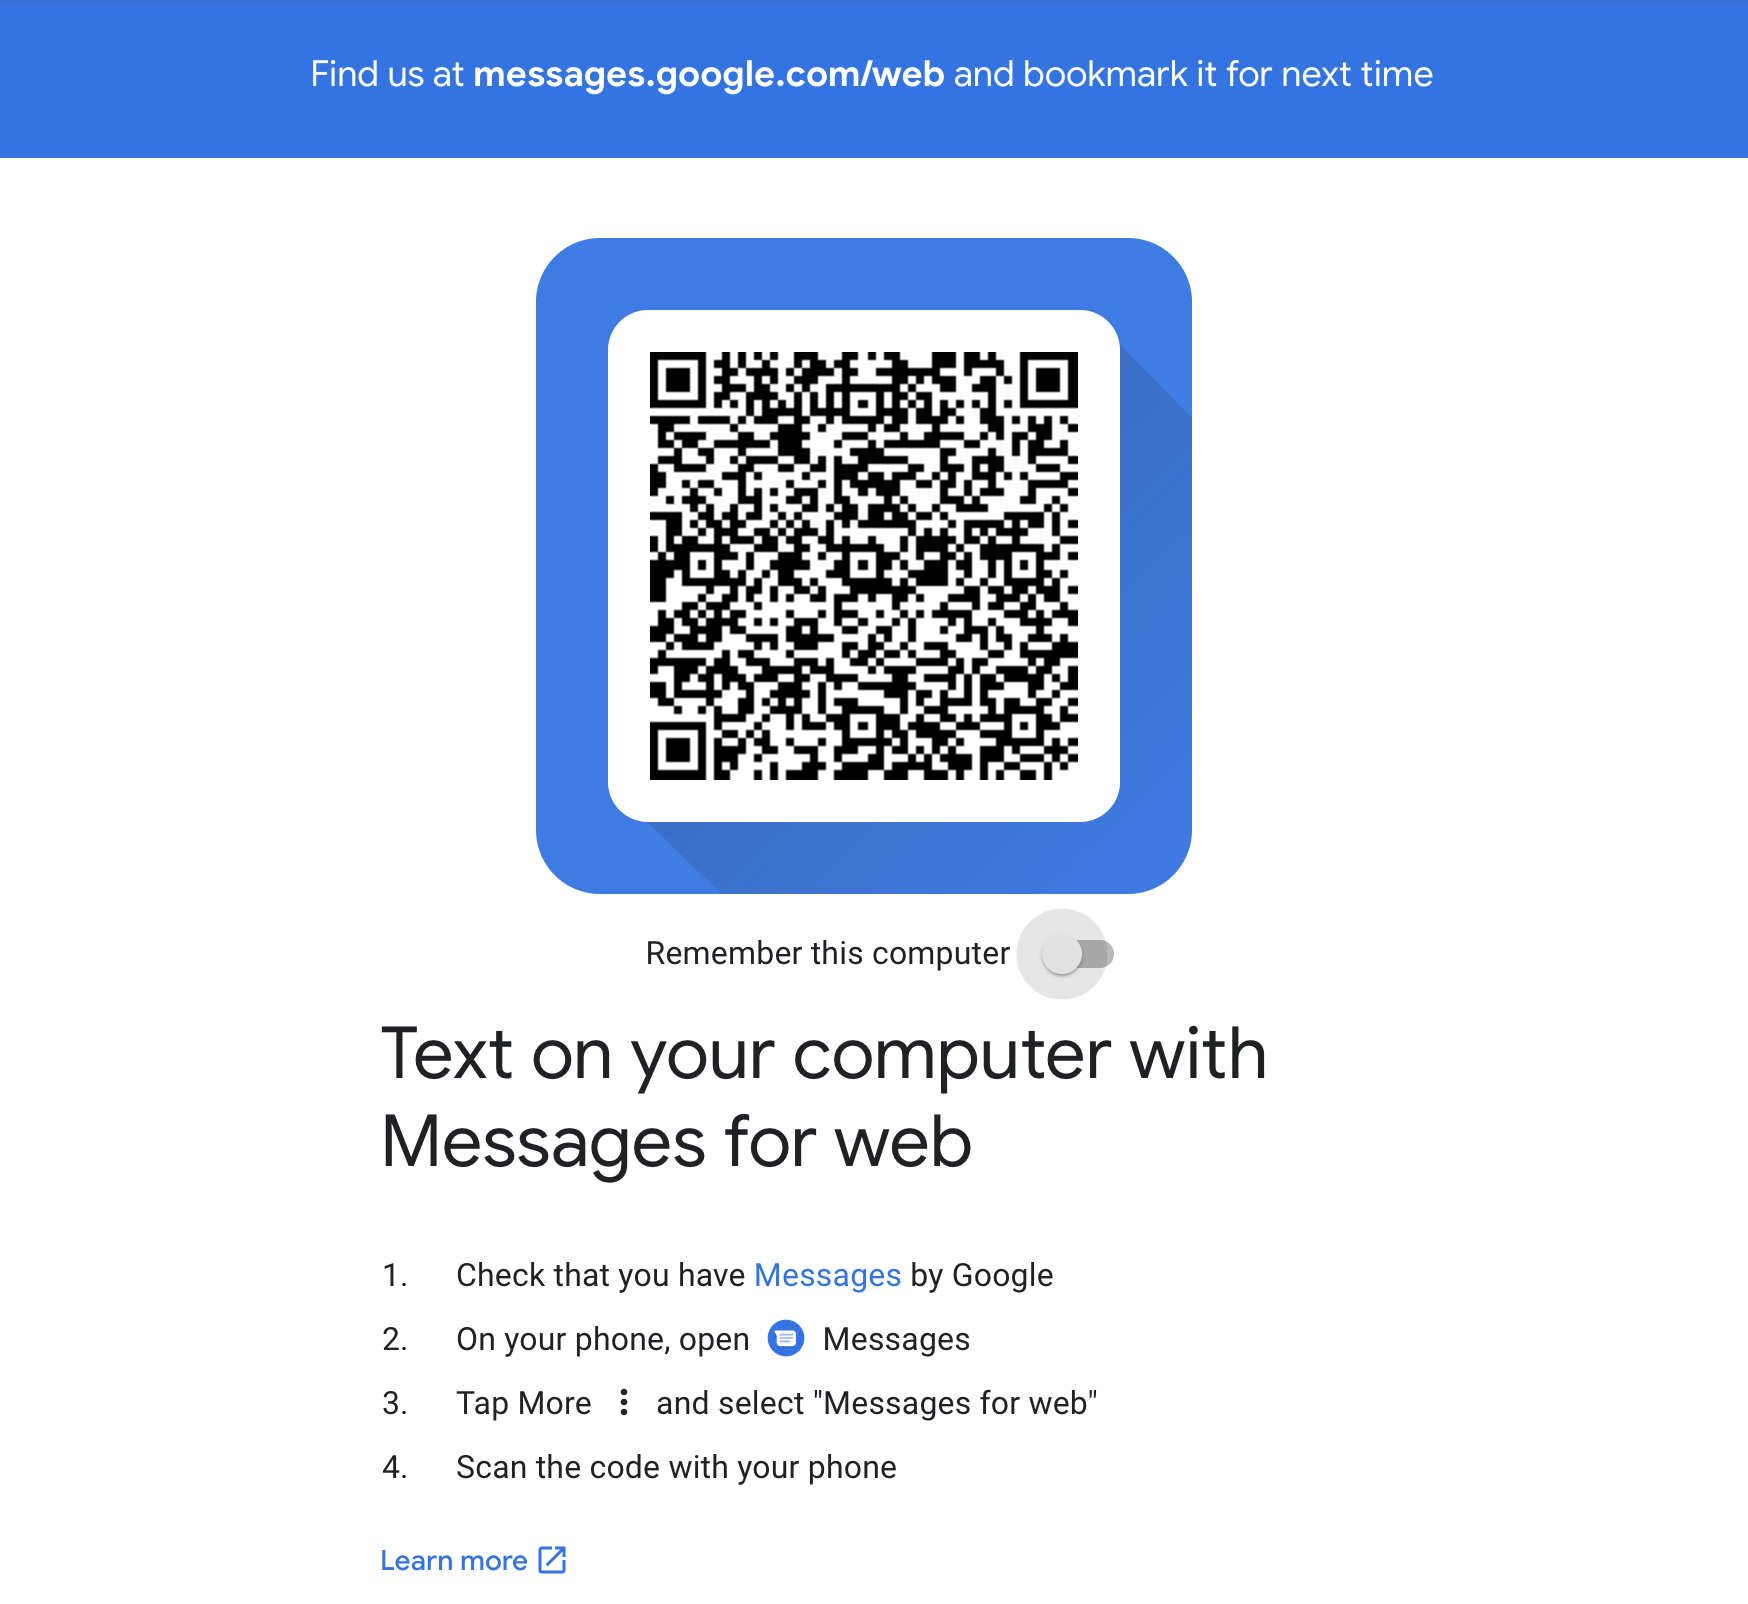 change messages android com to messages google com/web